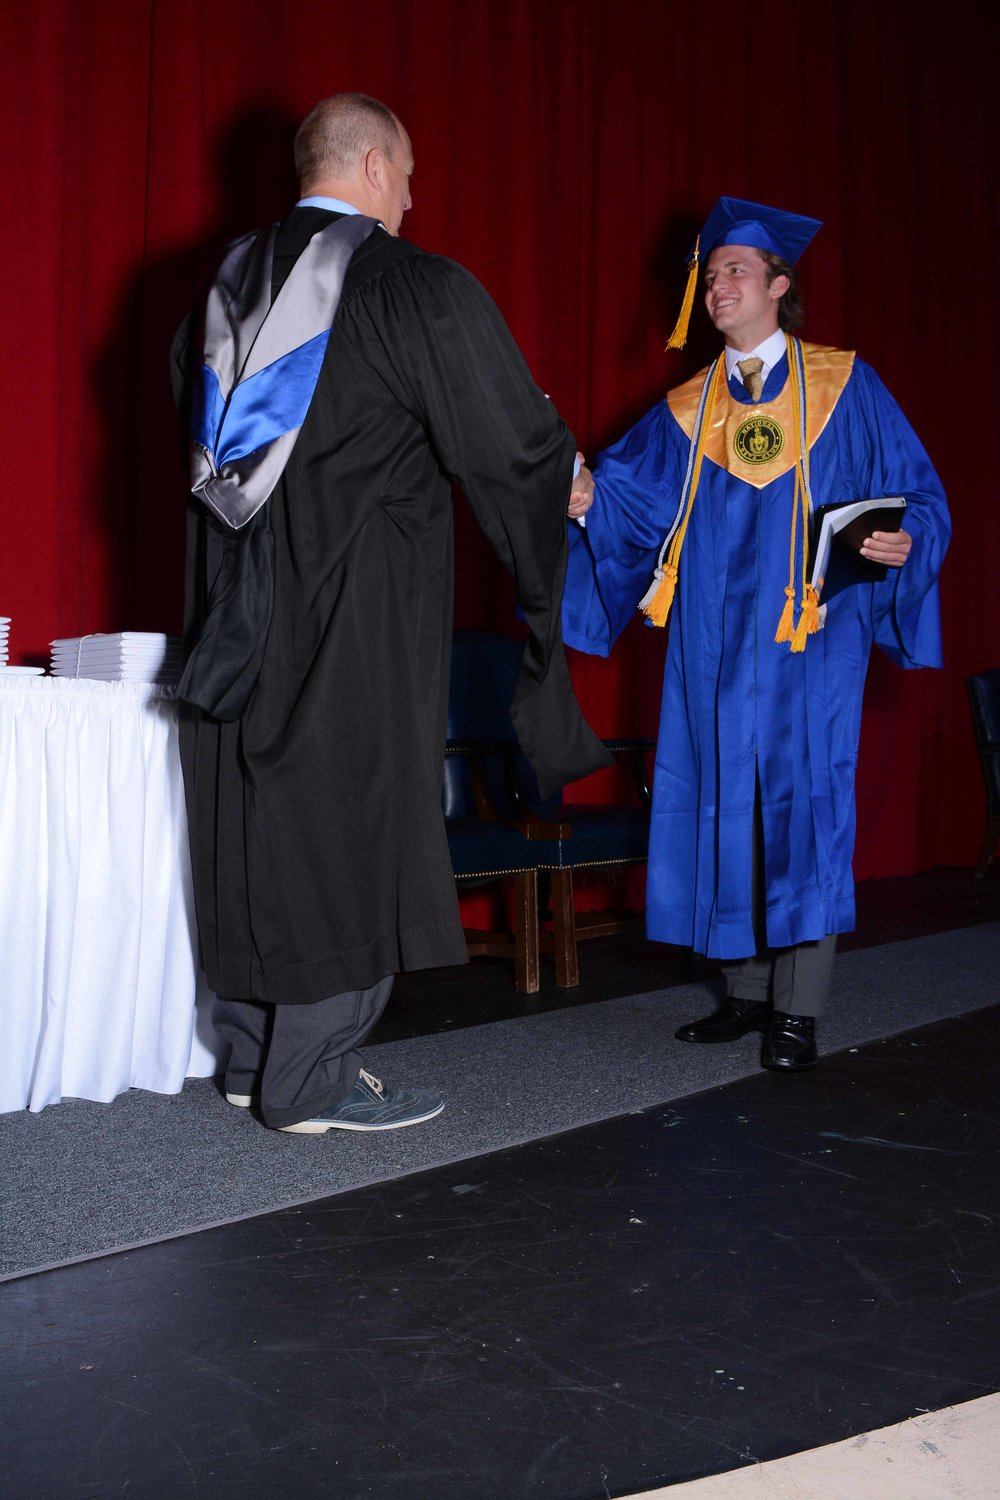 May14 Commencement140.jpg